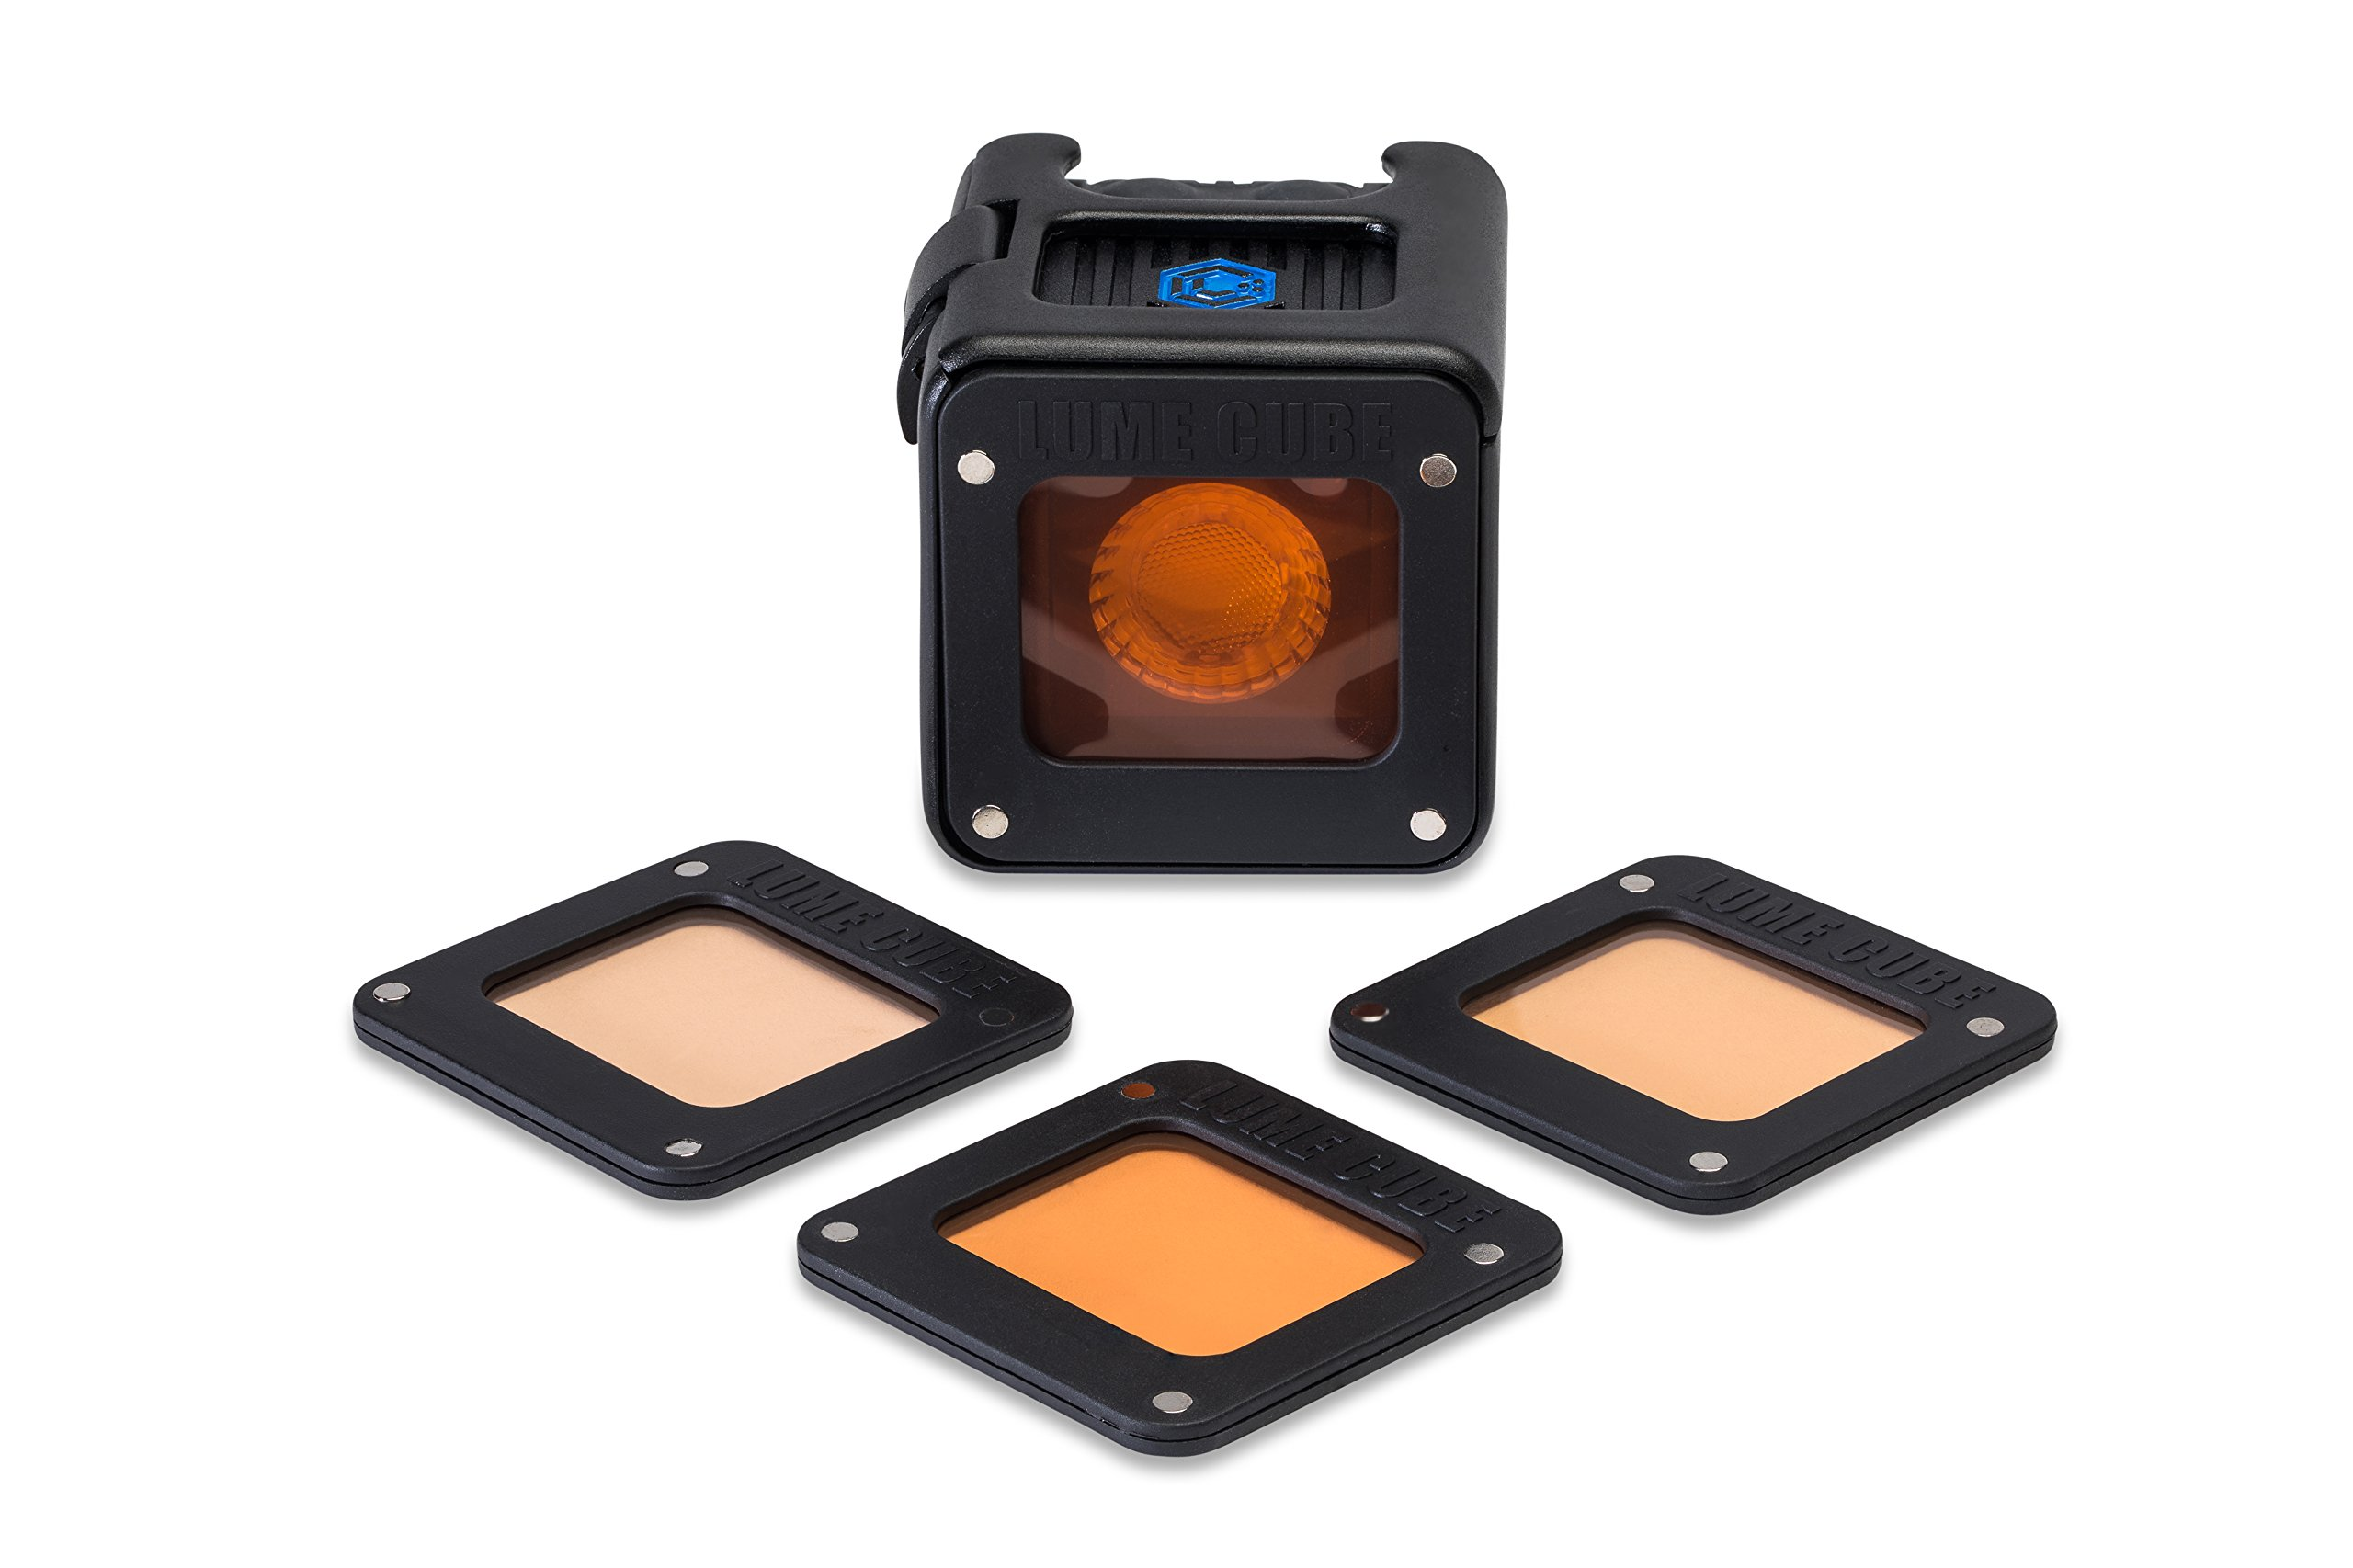 Lume Cube - CTO Warming Gels for the Light-House (Includes 4 Warming Gels)